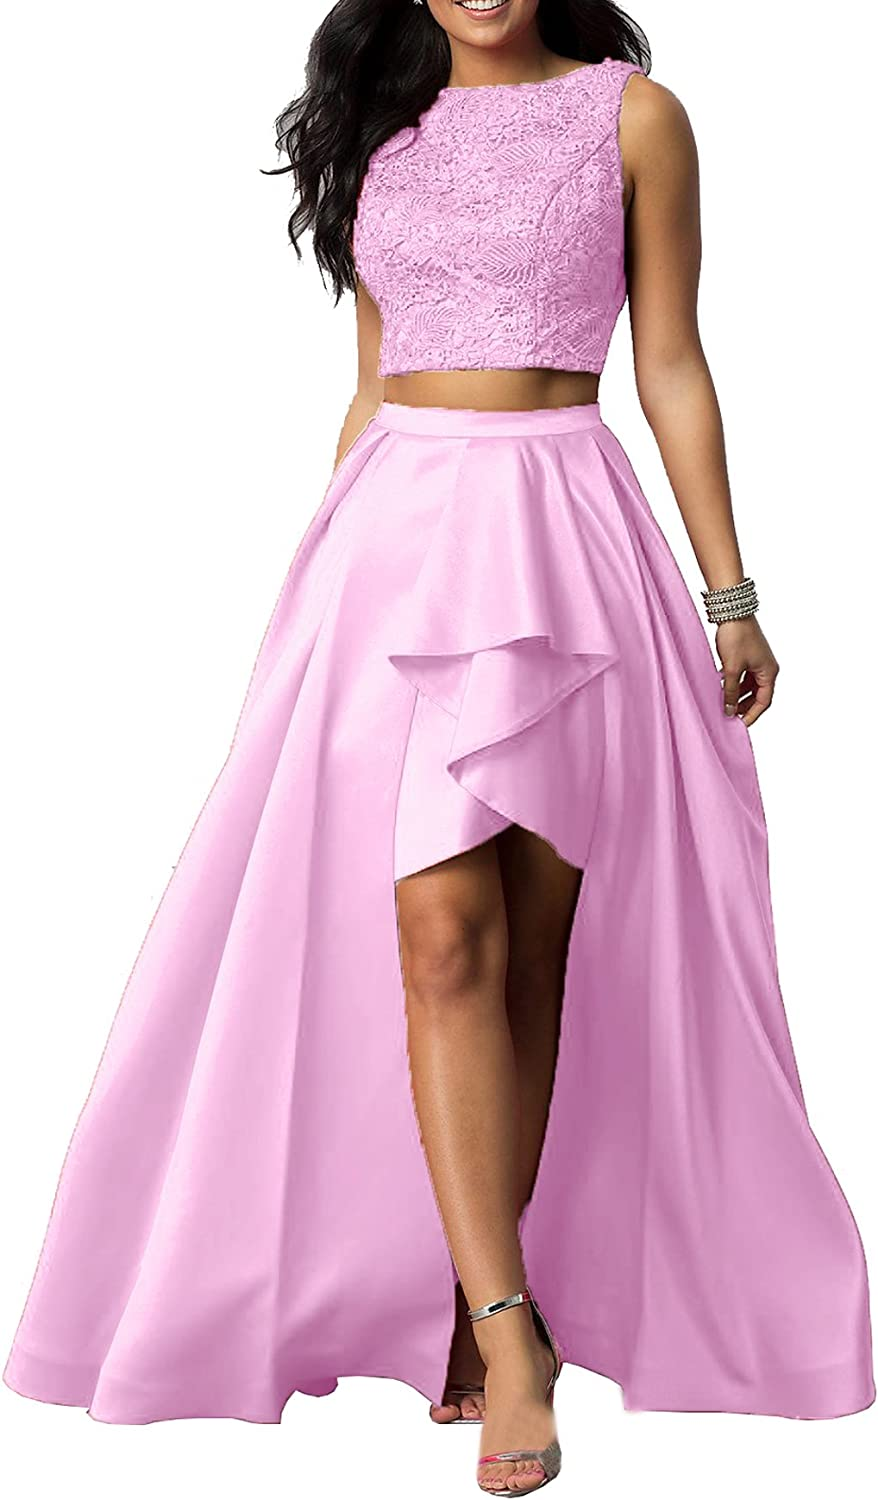 Beauty Bridal Women's 2018 High Low Prom Dress Sleeveless Homecoming Party Dress S062